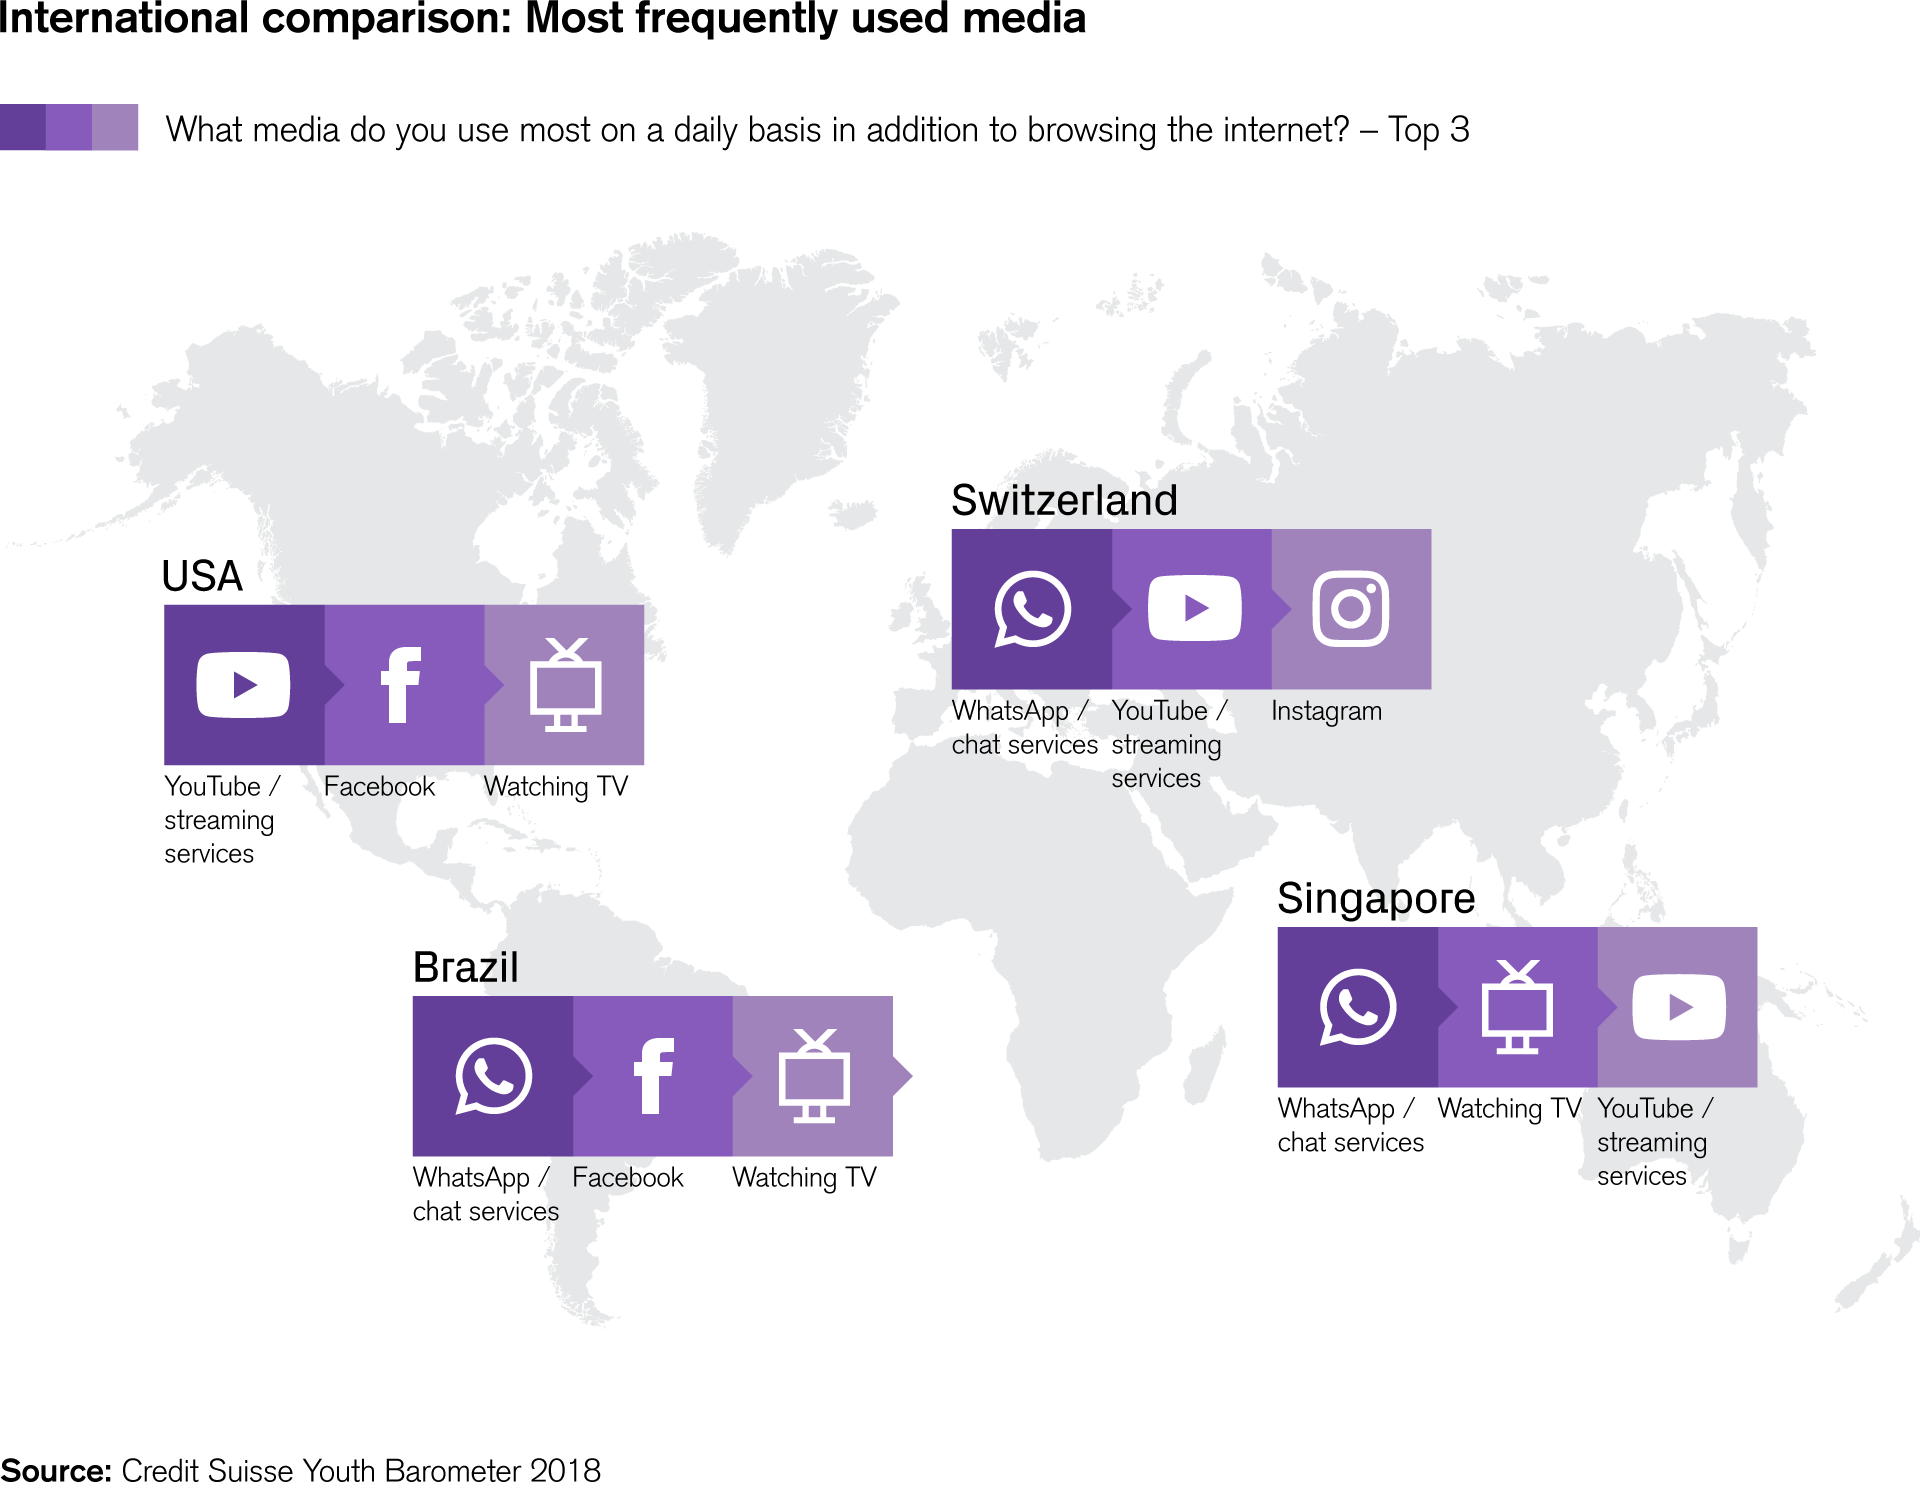 International comparison: Most frequently used media